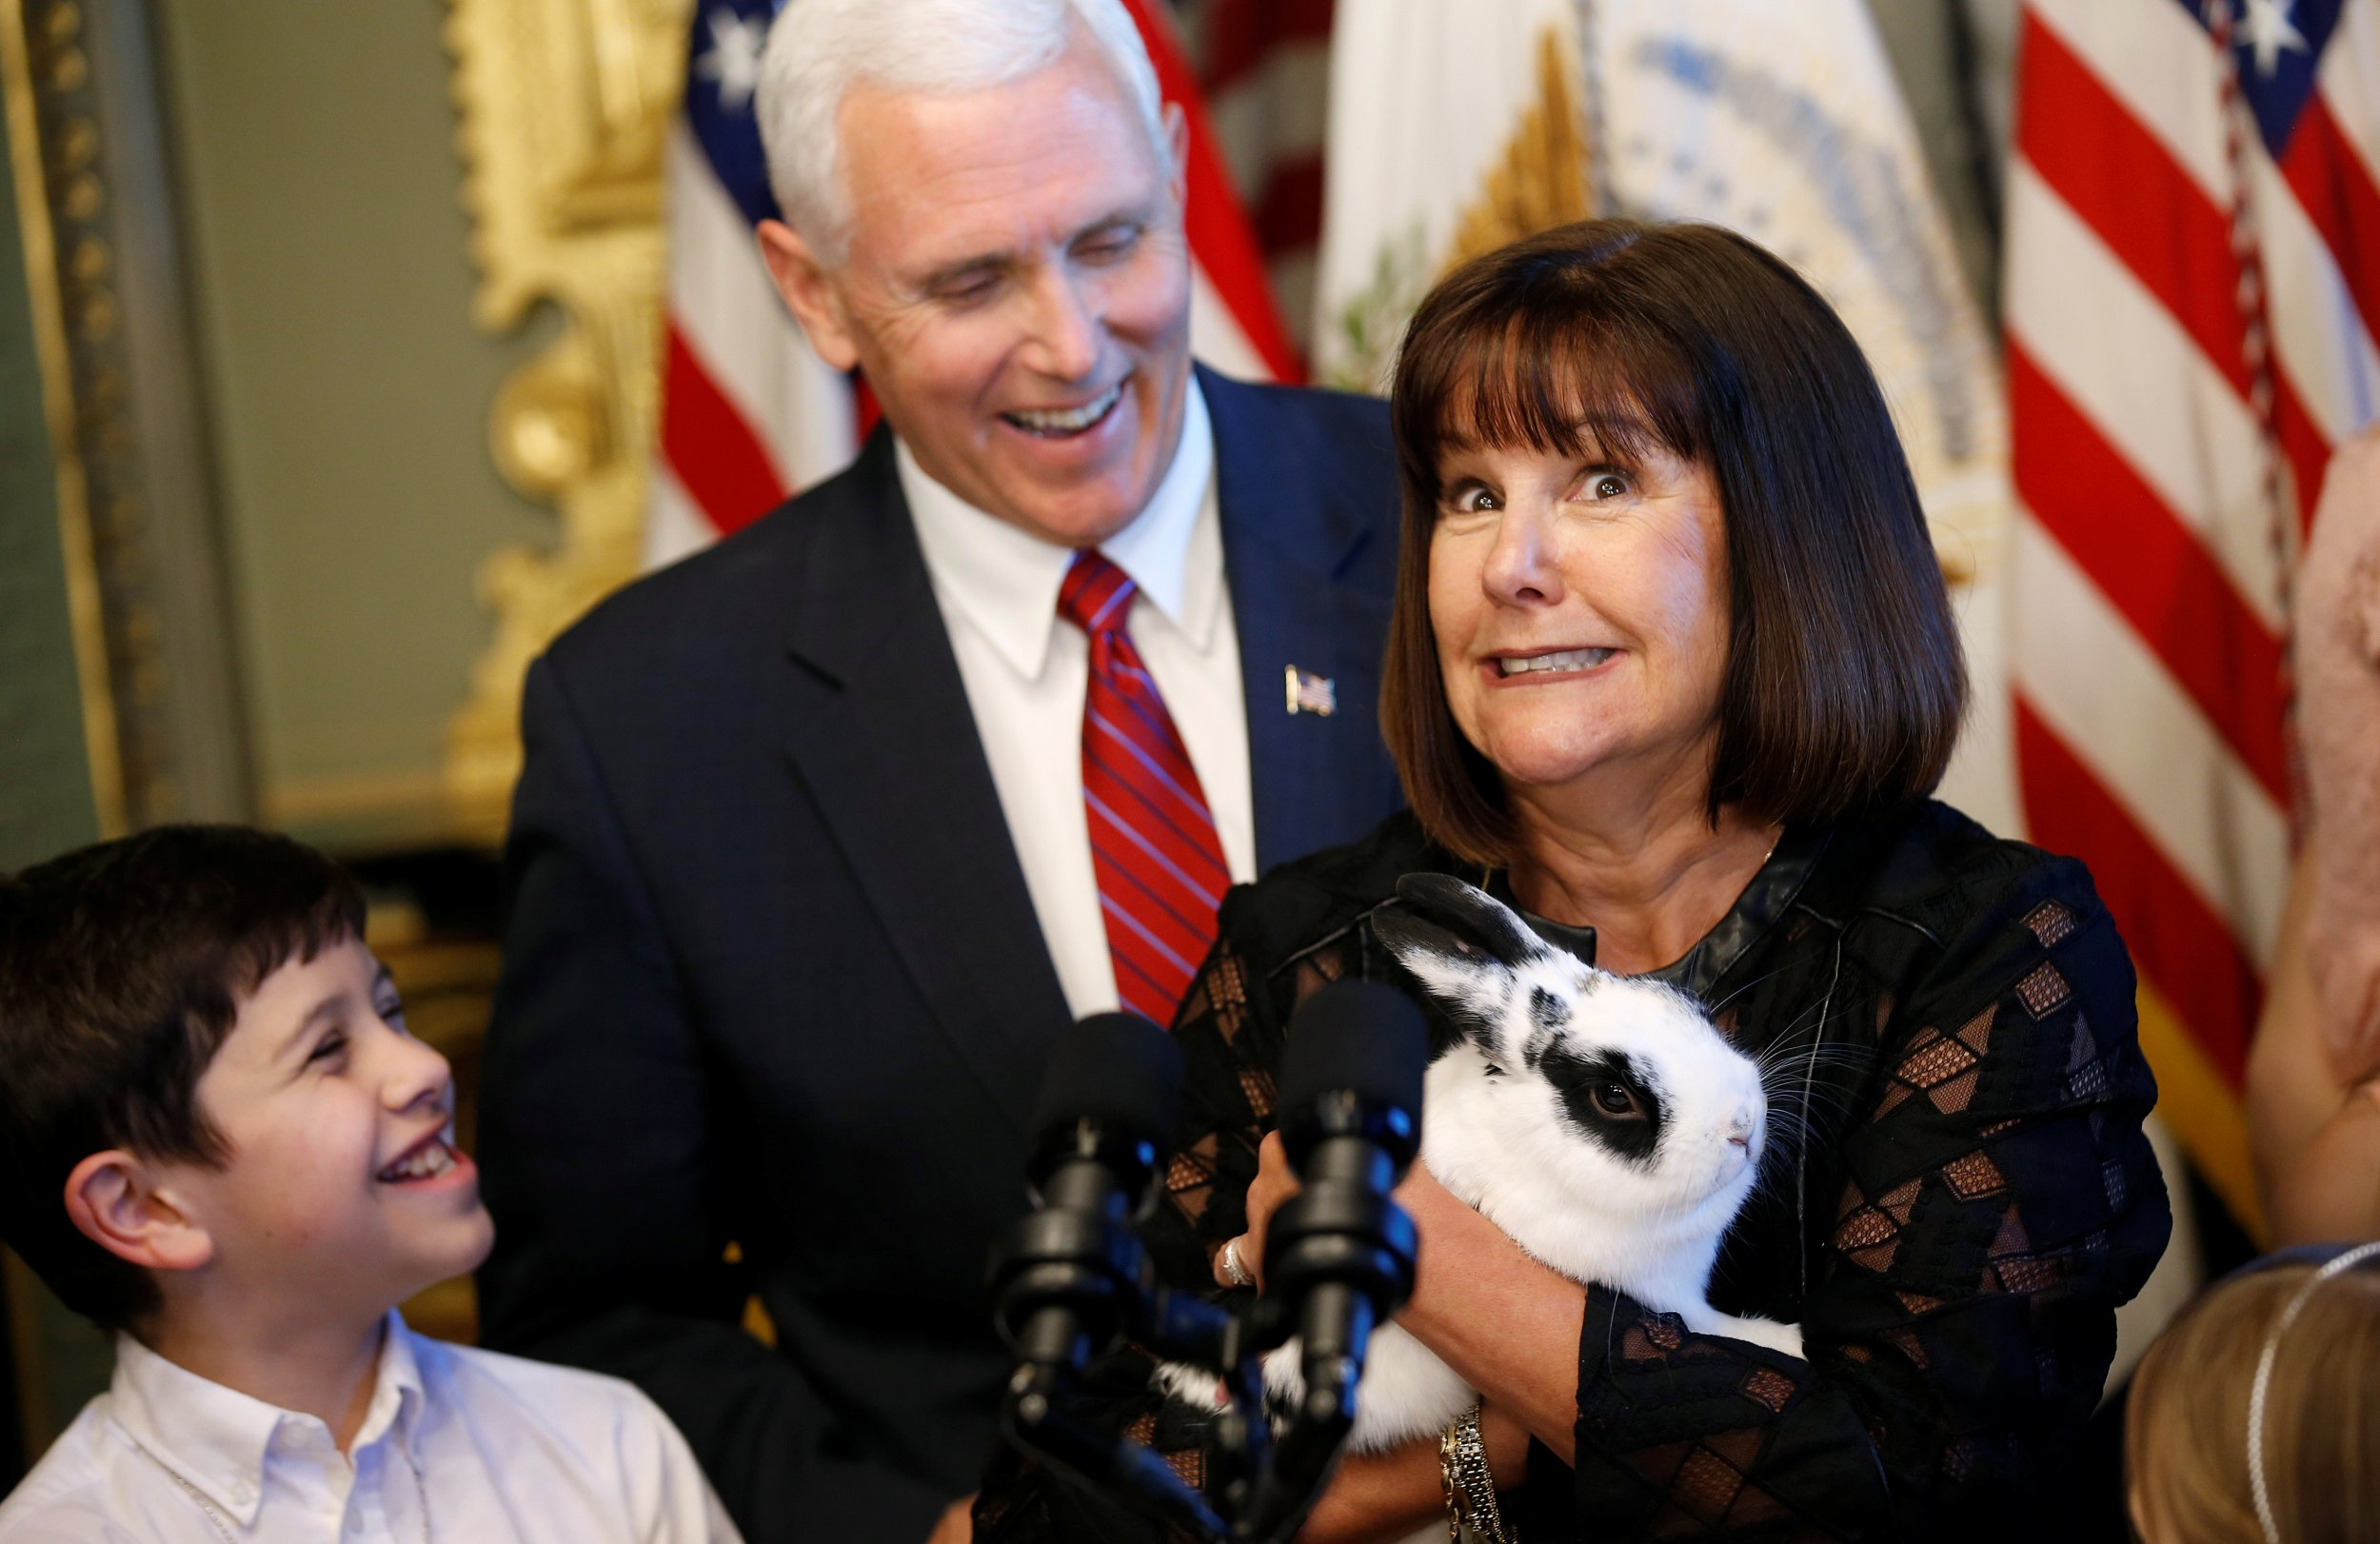 After Mike Pence Hits Kid In Face Boy Demands Apology And